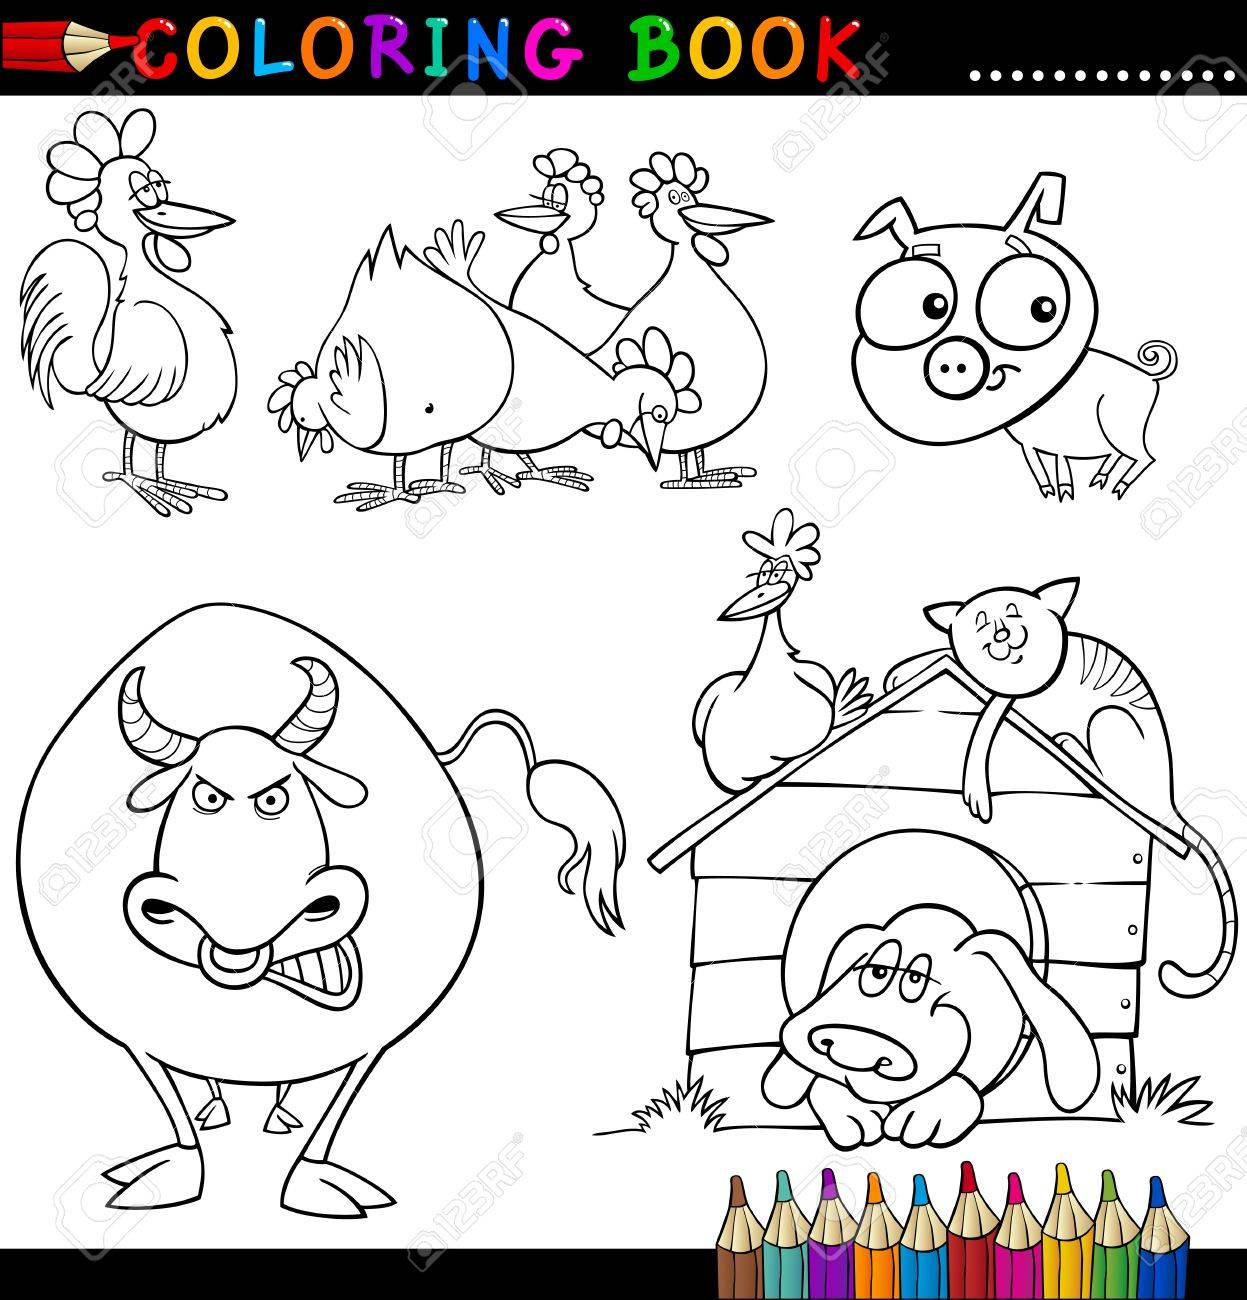 Coloring Book or Page Cartoon Illustration of Funny Farm and Livestock Animals for Children Stock Vector - 15306595